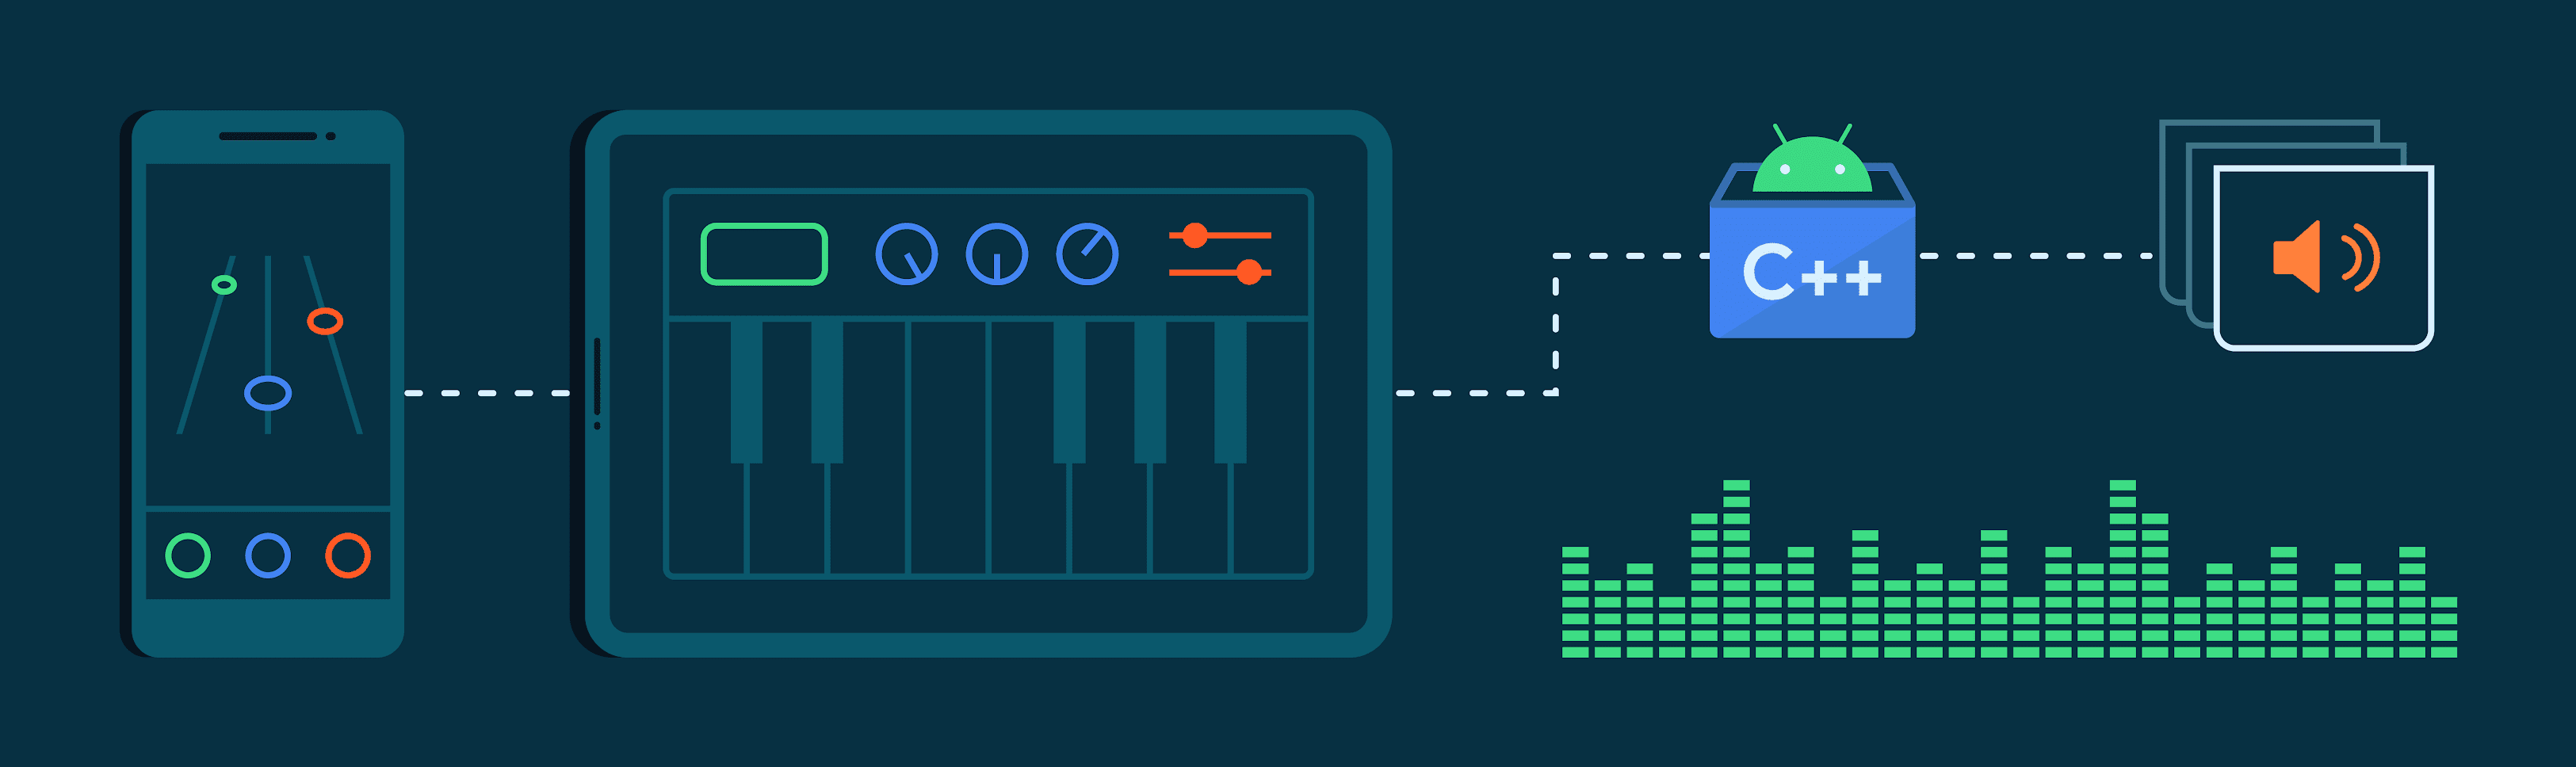 High Performance Game Audio with Oboe graphic